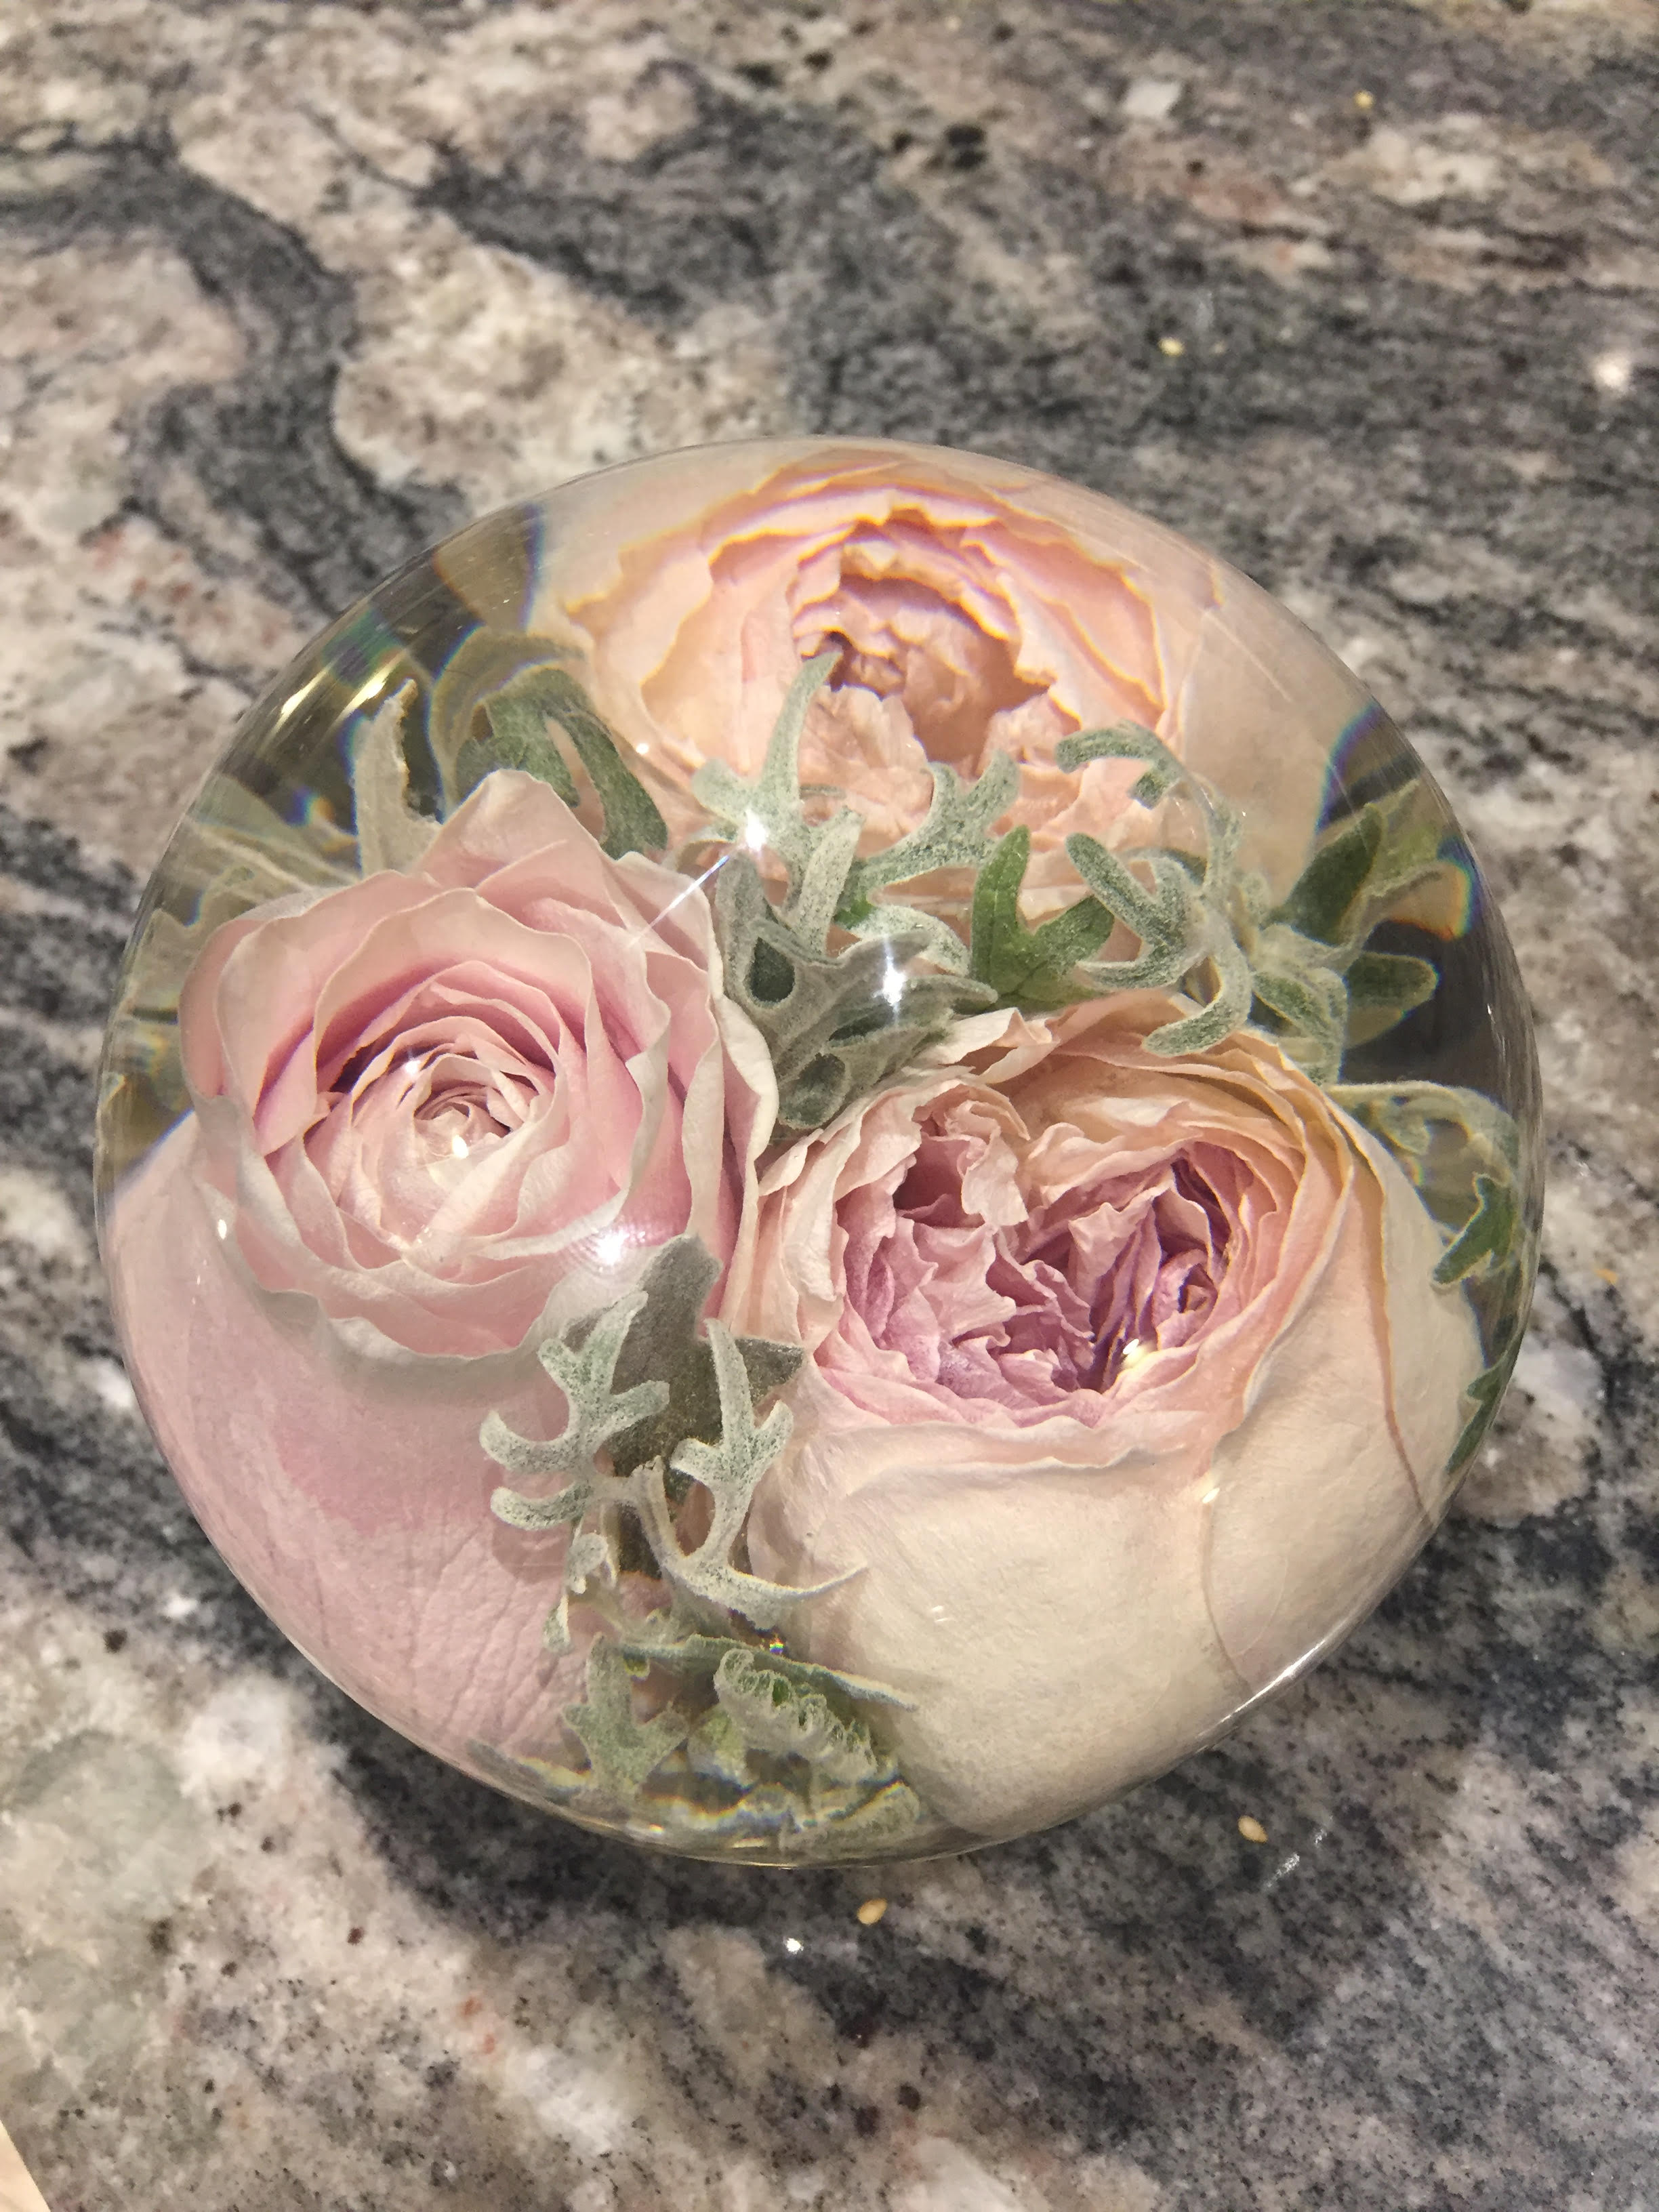 Bridal bouquet preserved in beautiful paper weight - Flower Preservation Workshop